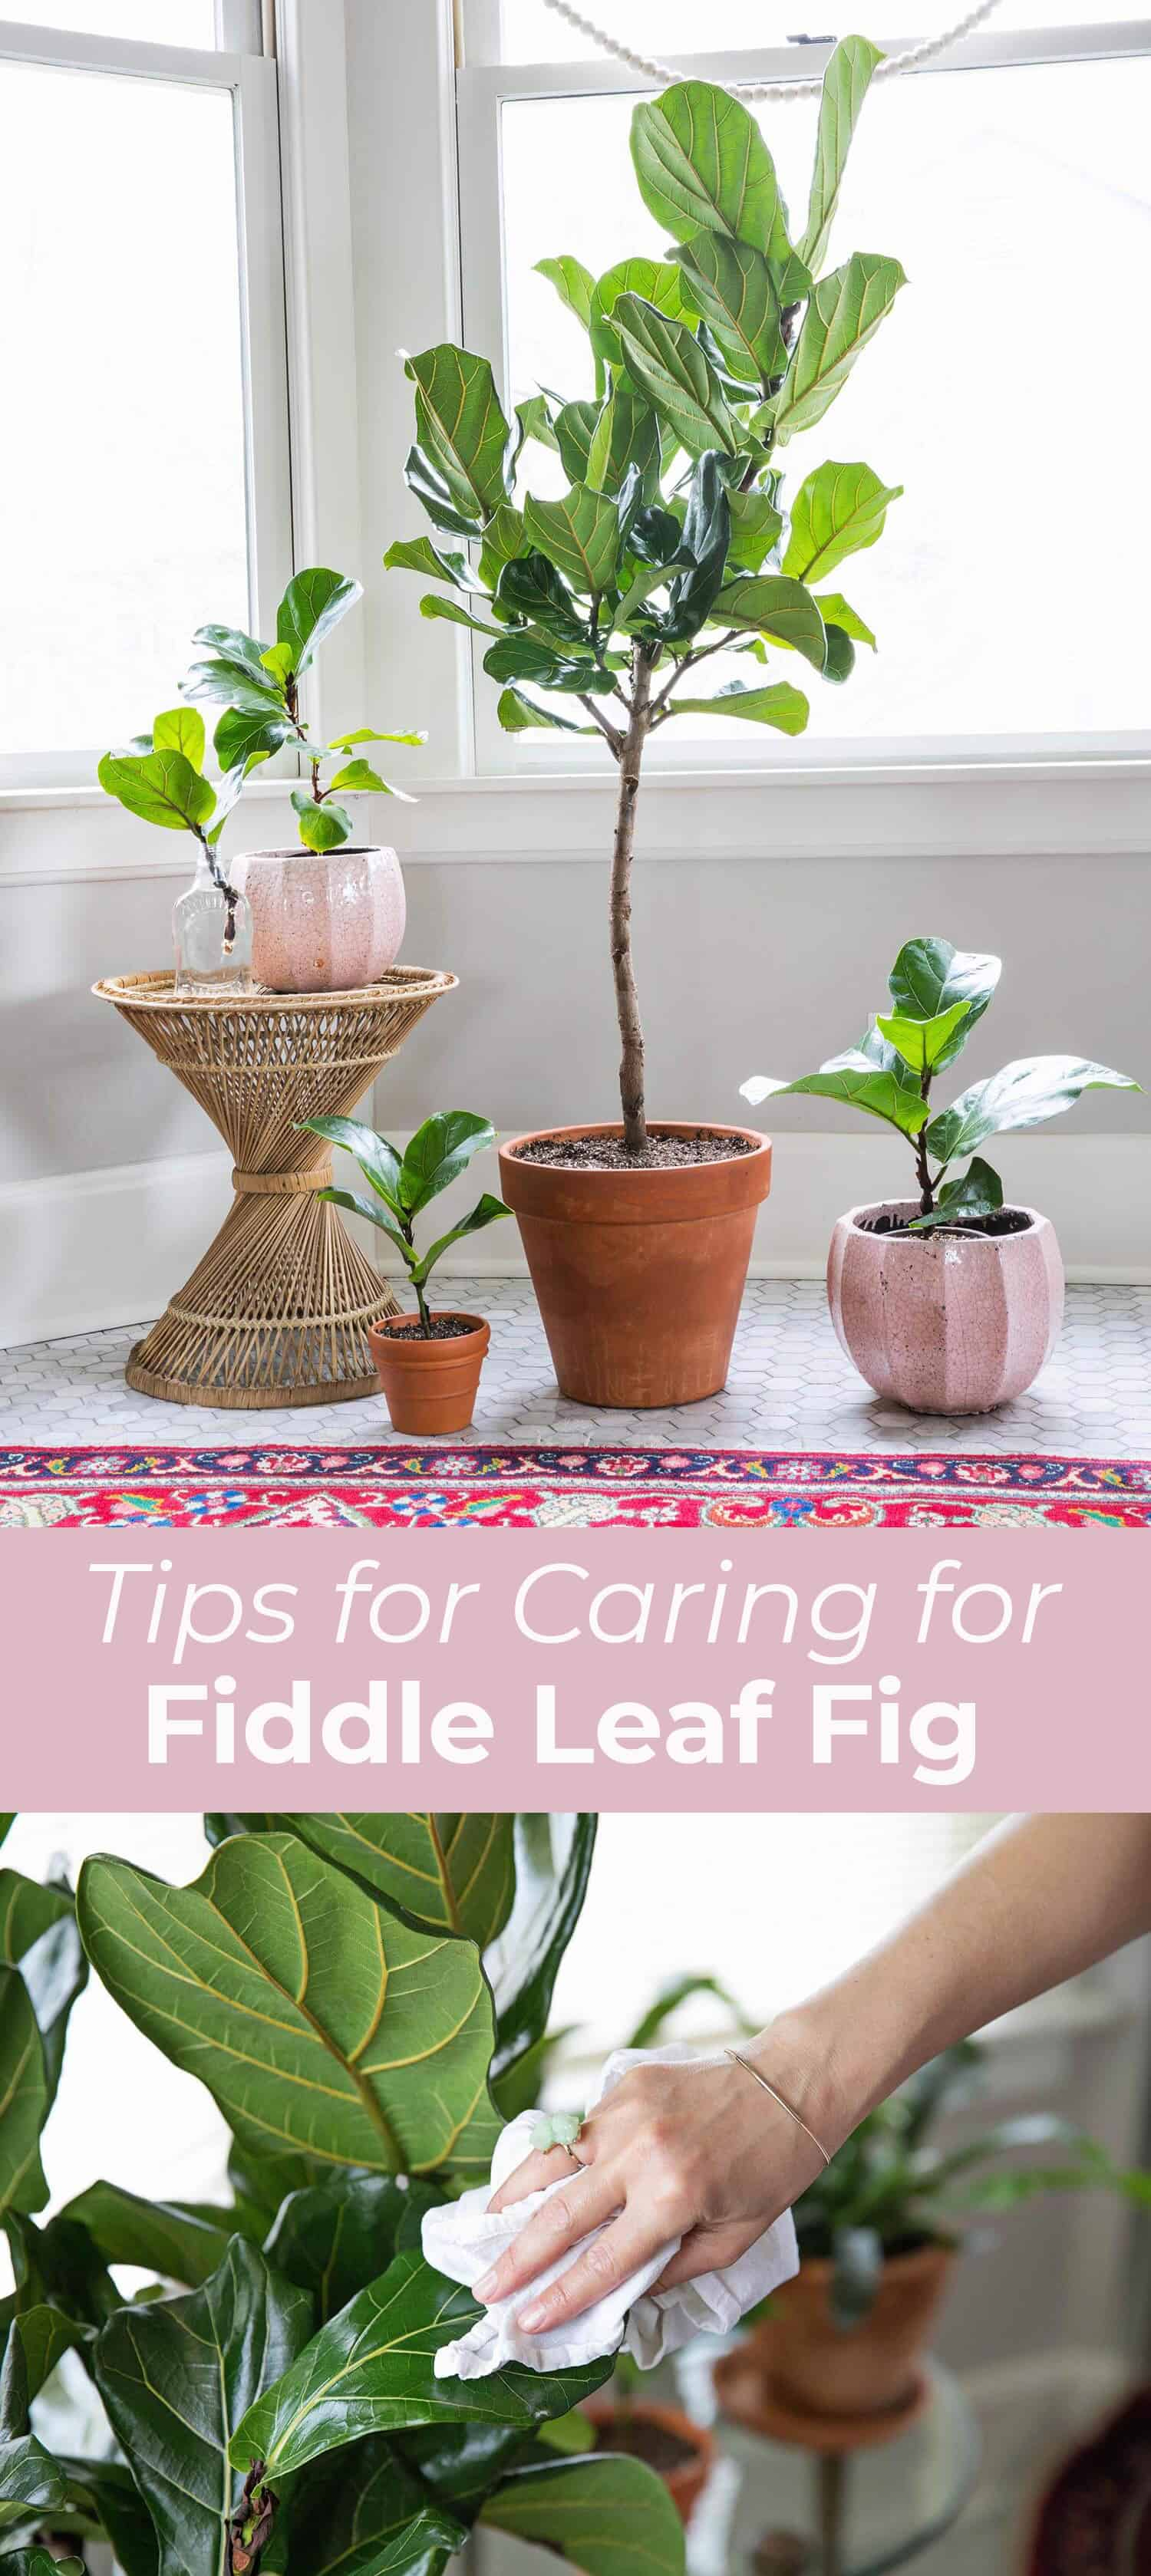 5 Tips for Caring for Fiddle Leaf Figs - A Beautiful Mess